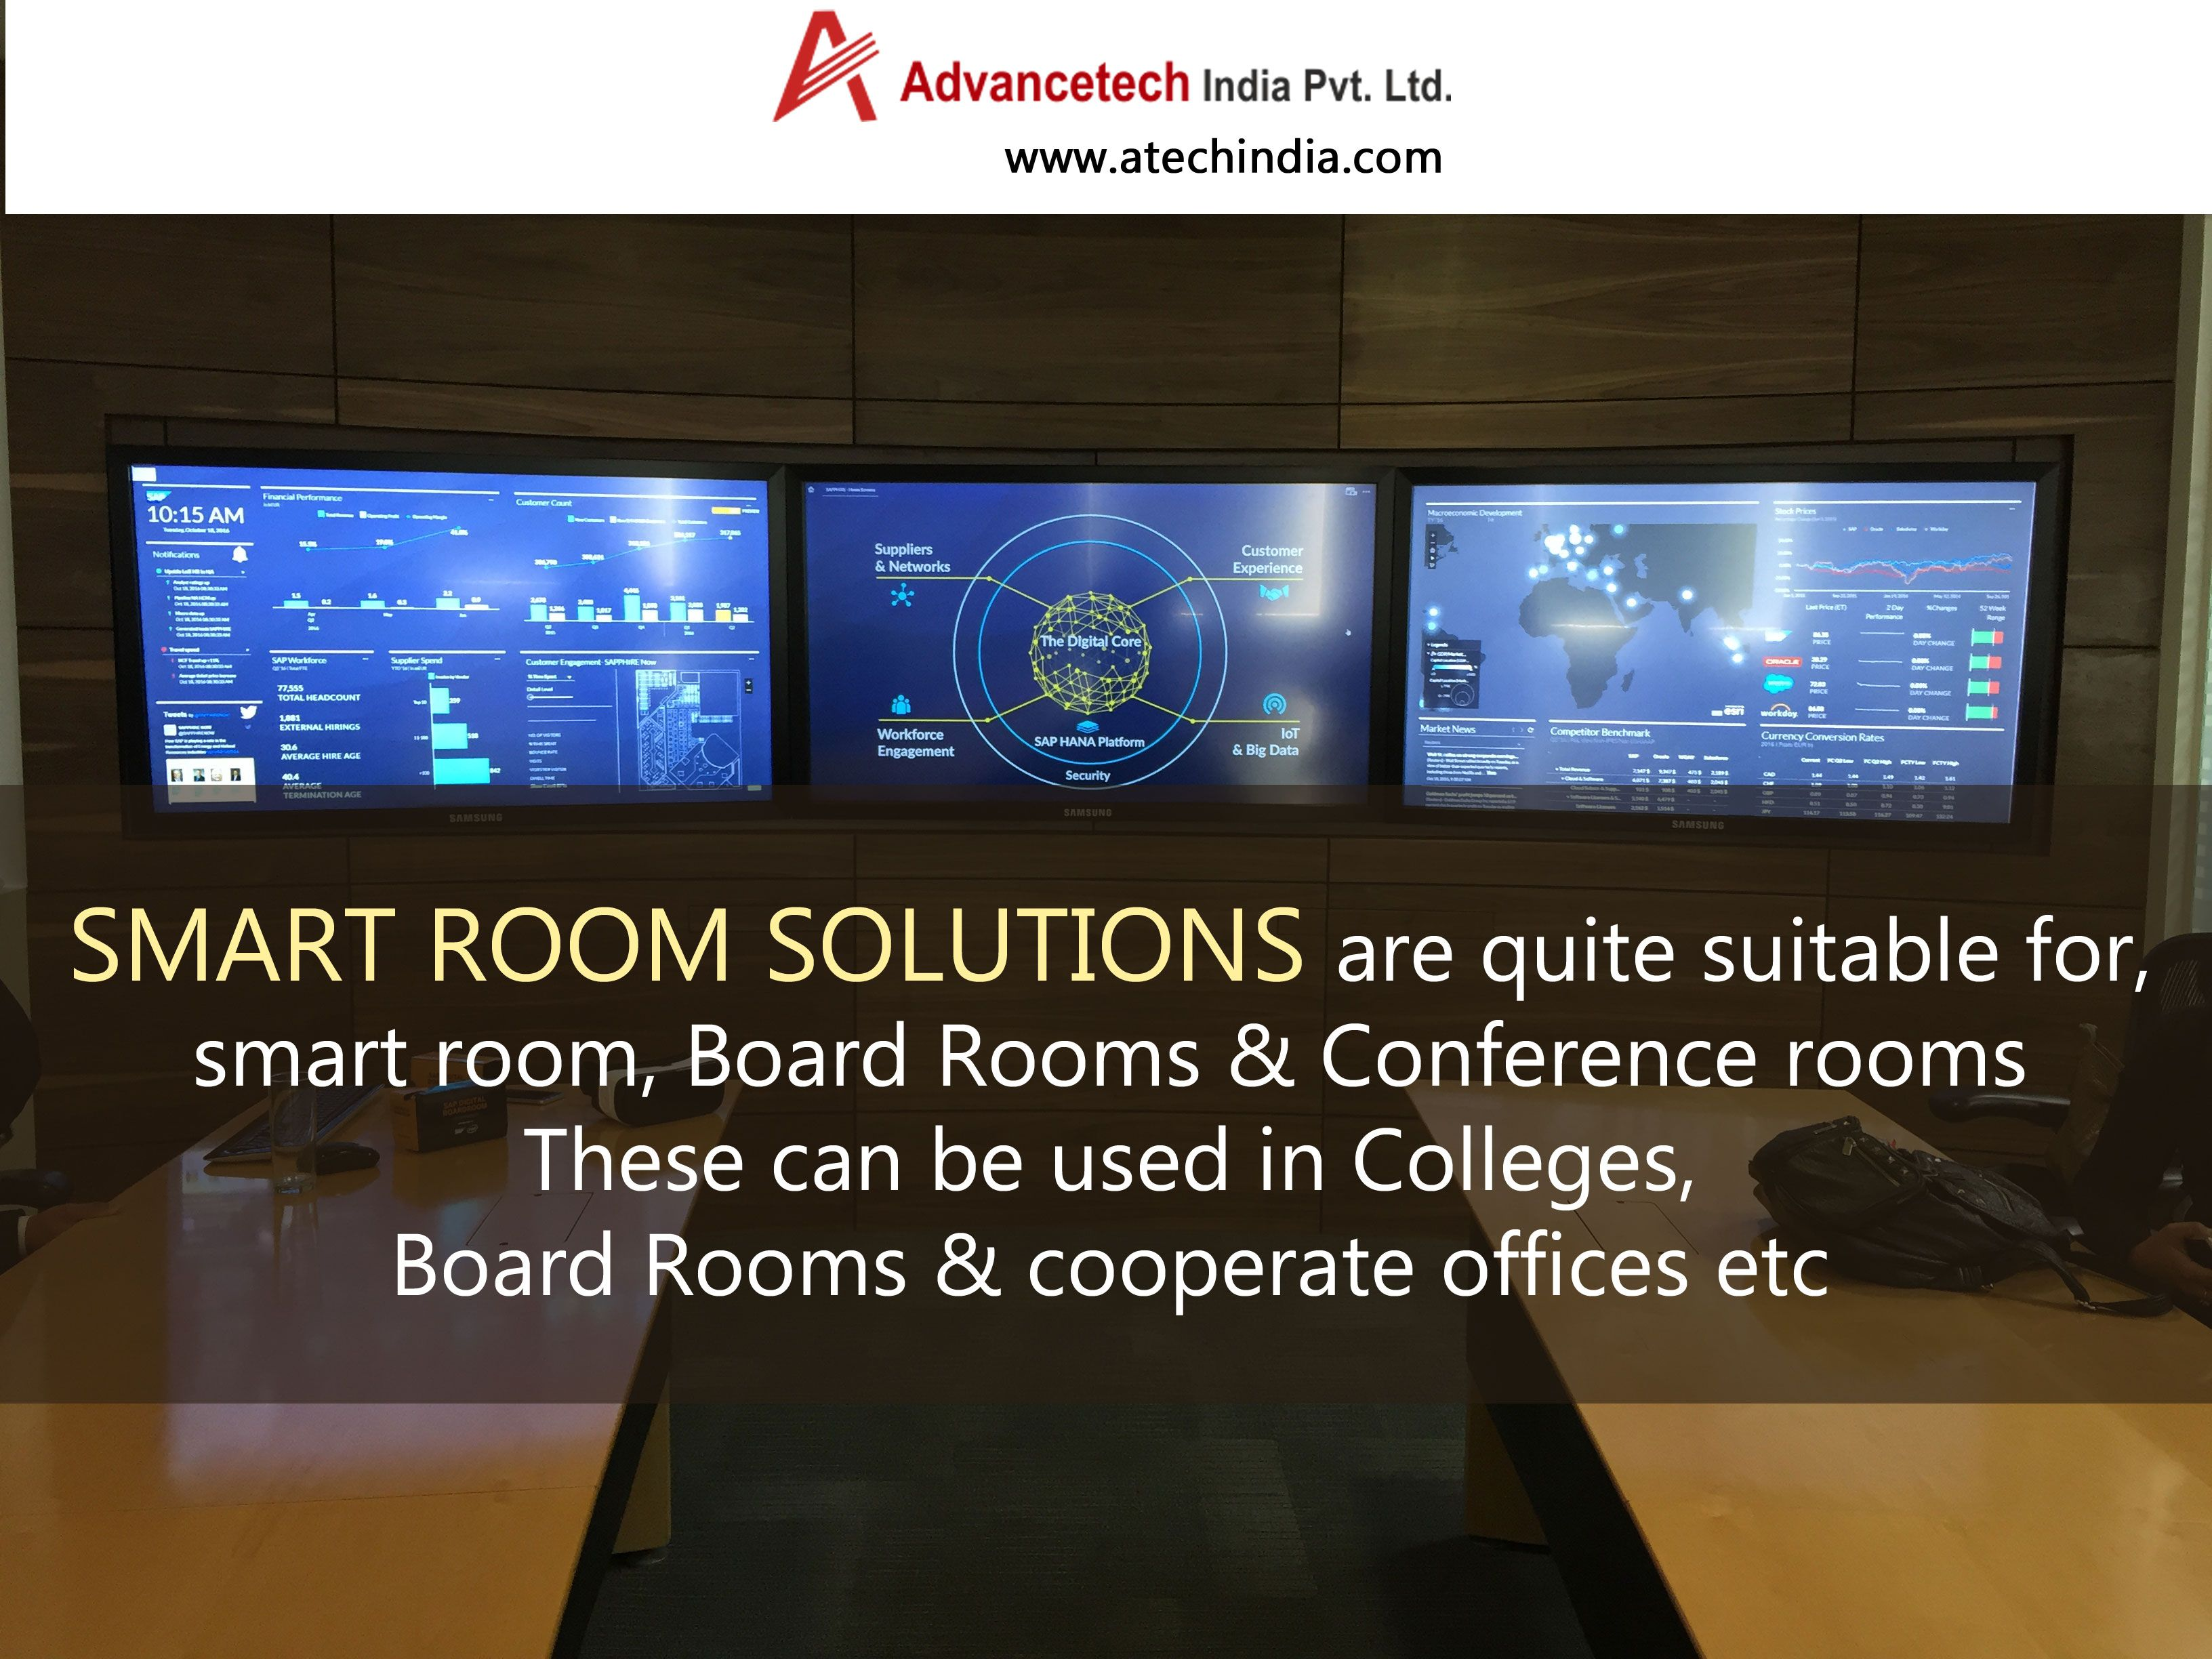 Advance Technology offers smart room solutions that are